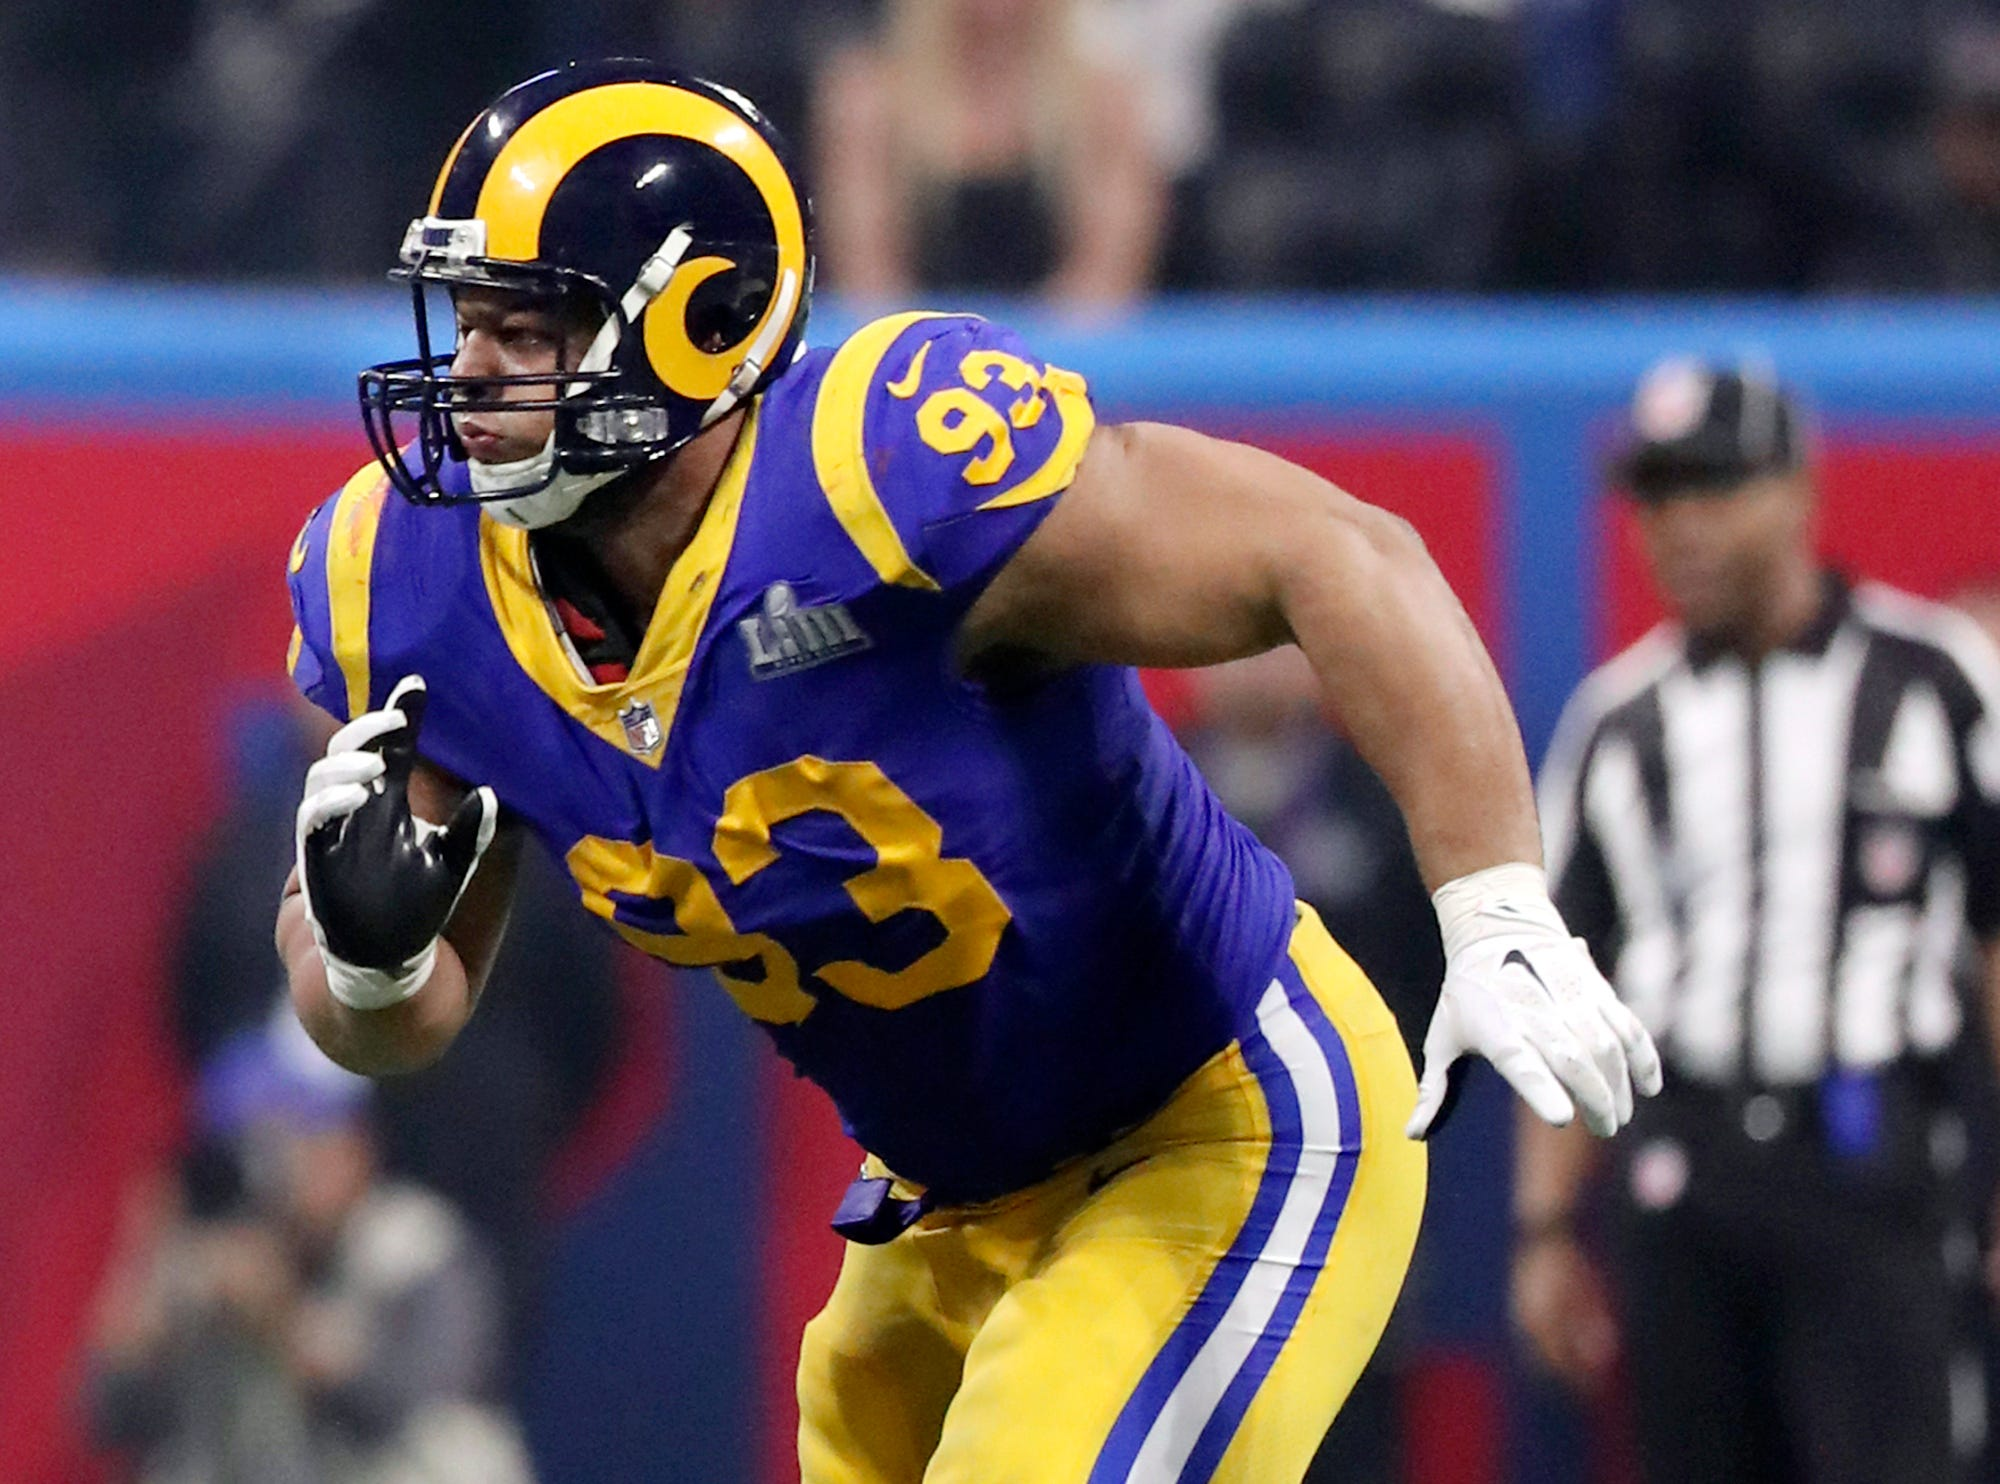 Ndamukong Suh headed to Tampa Bay to replace Gerald McCoy